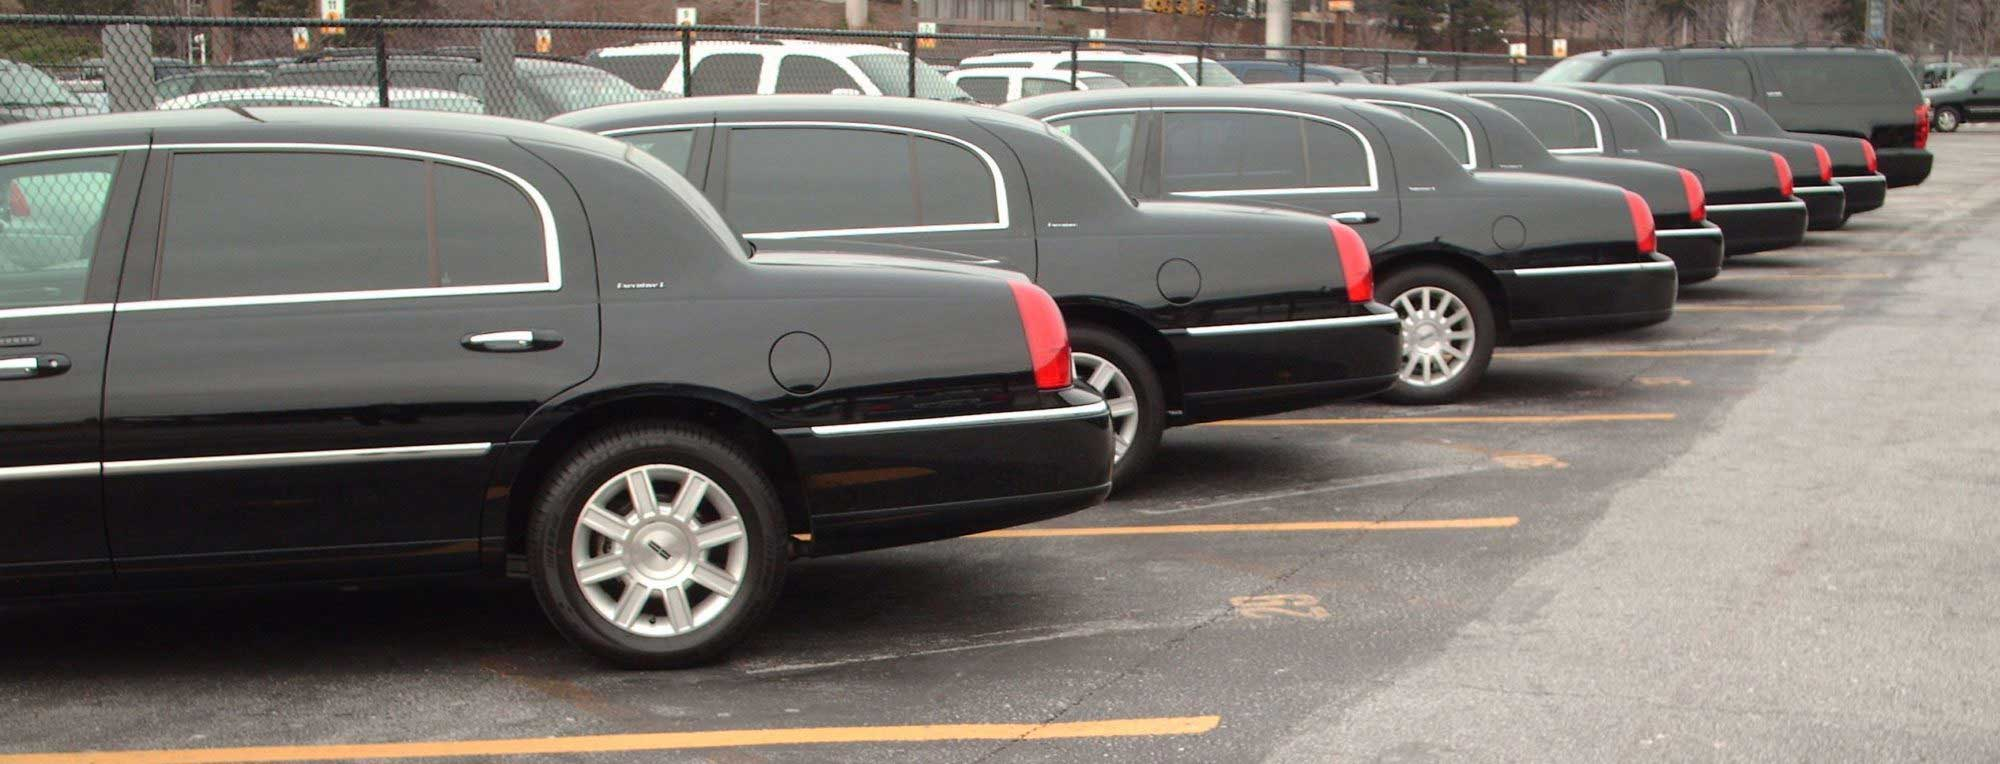 Limousine Minneapolis